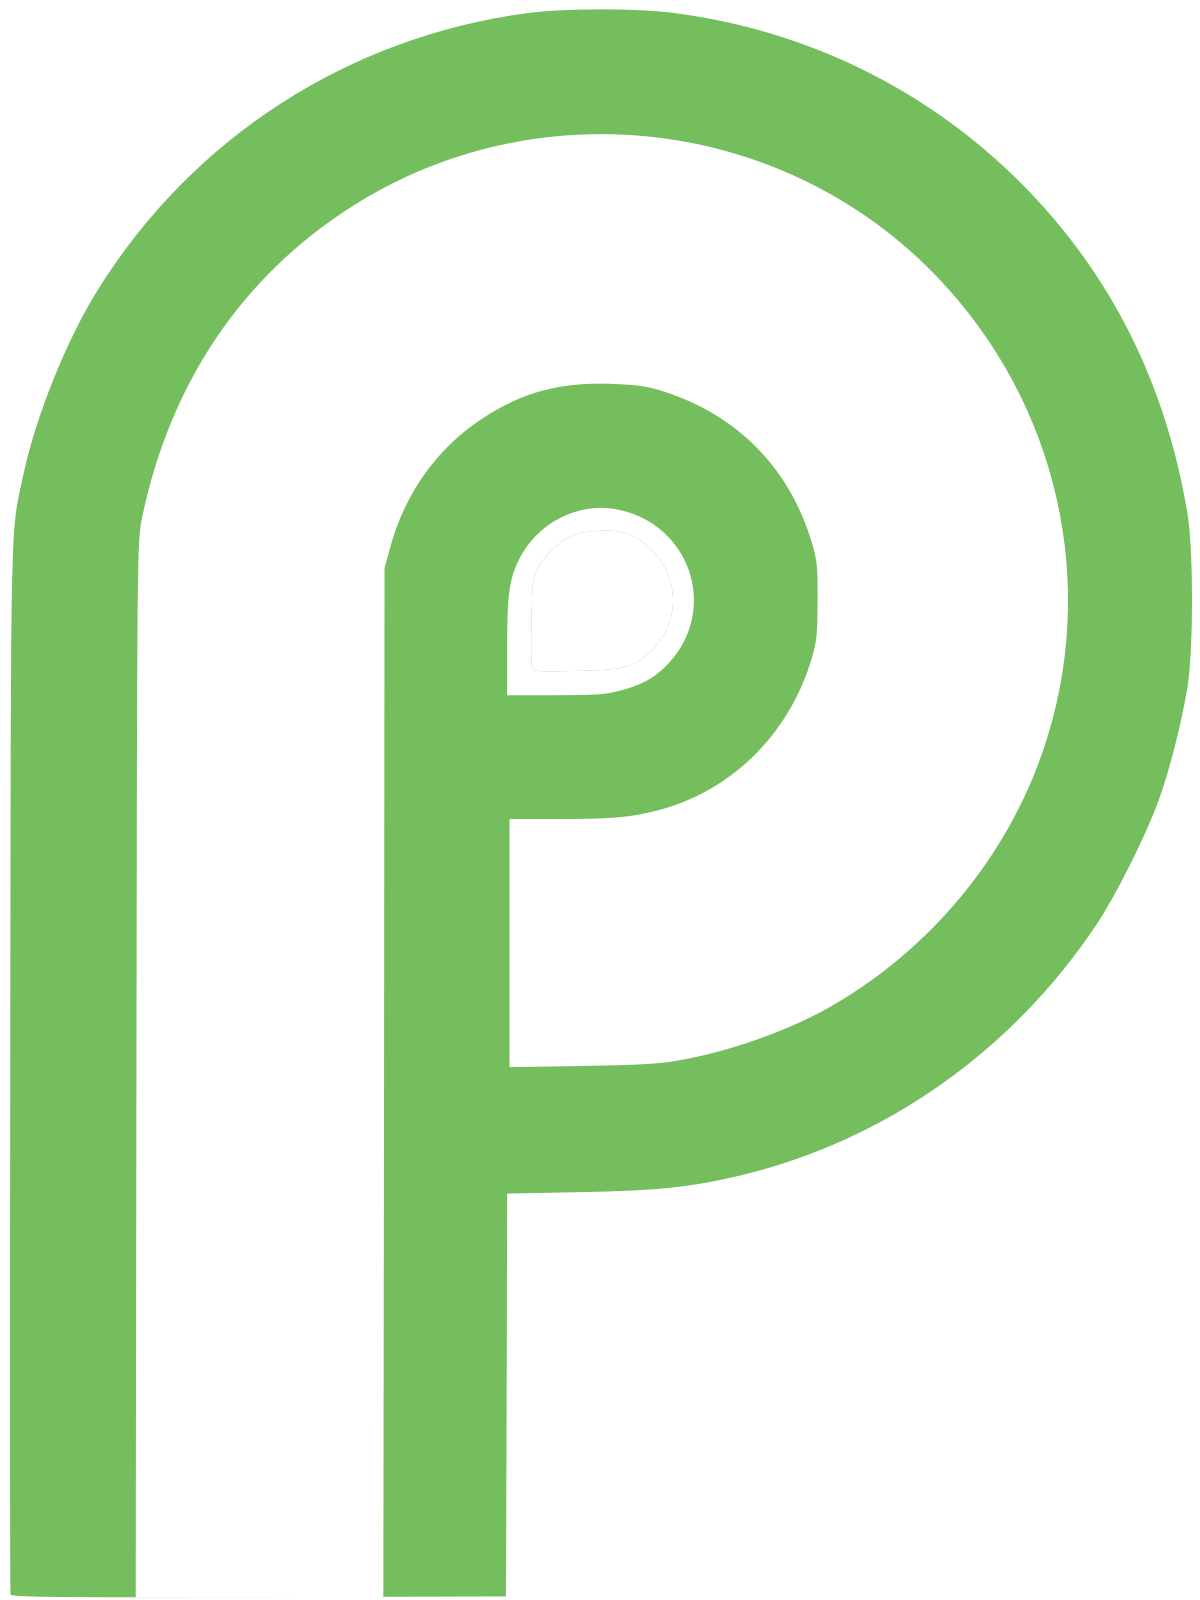 File:Android P logo.svg.